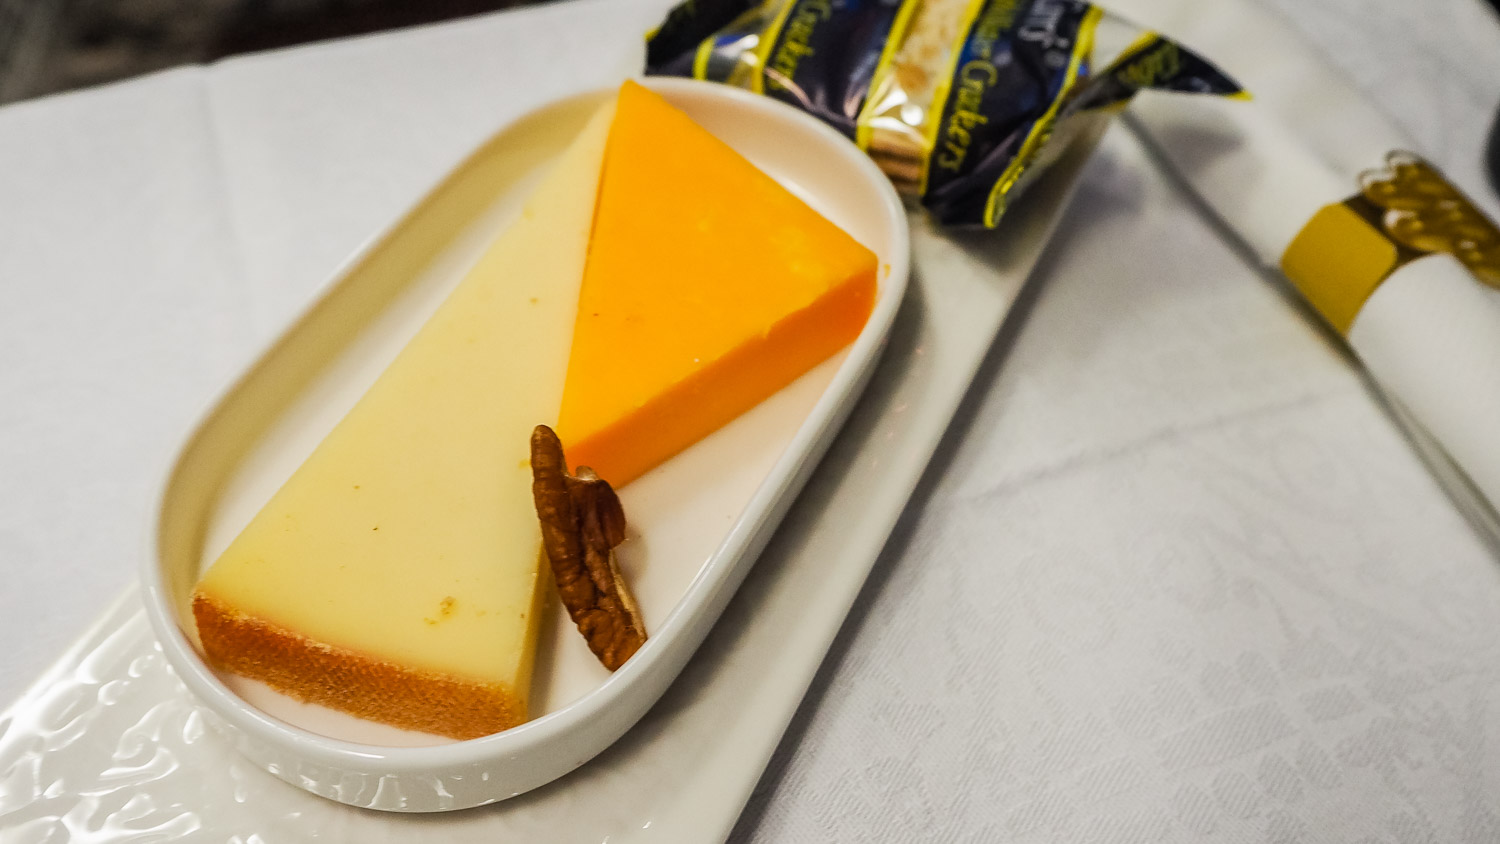 Cheese Plate - KLM Business Class - by Britney Hope - The Wayward Post